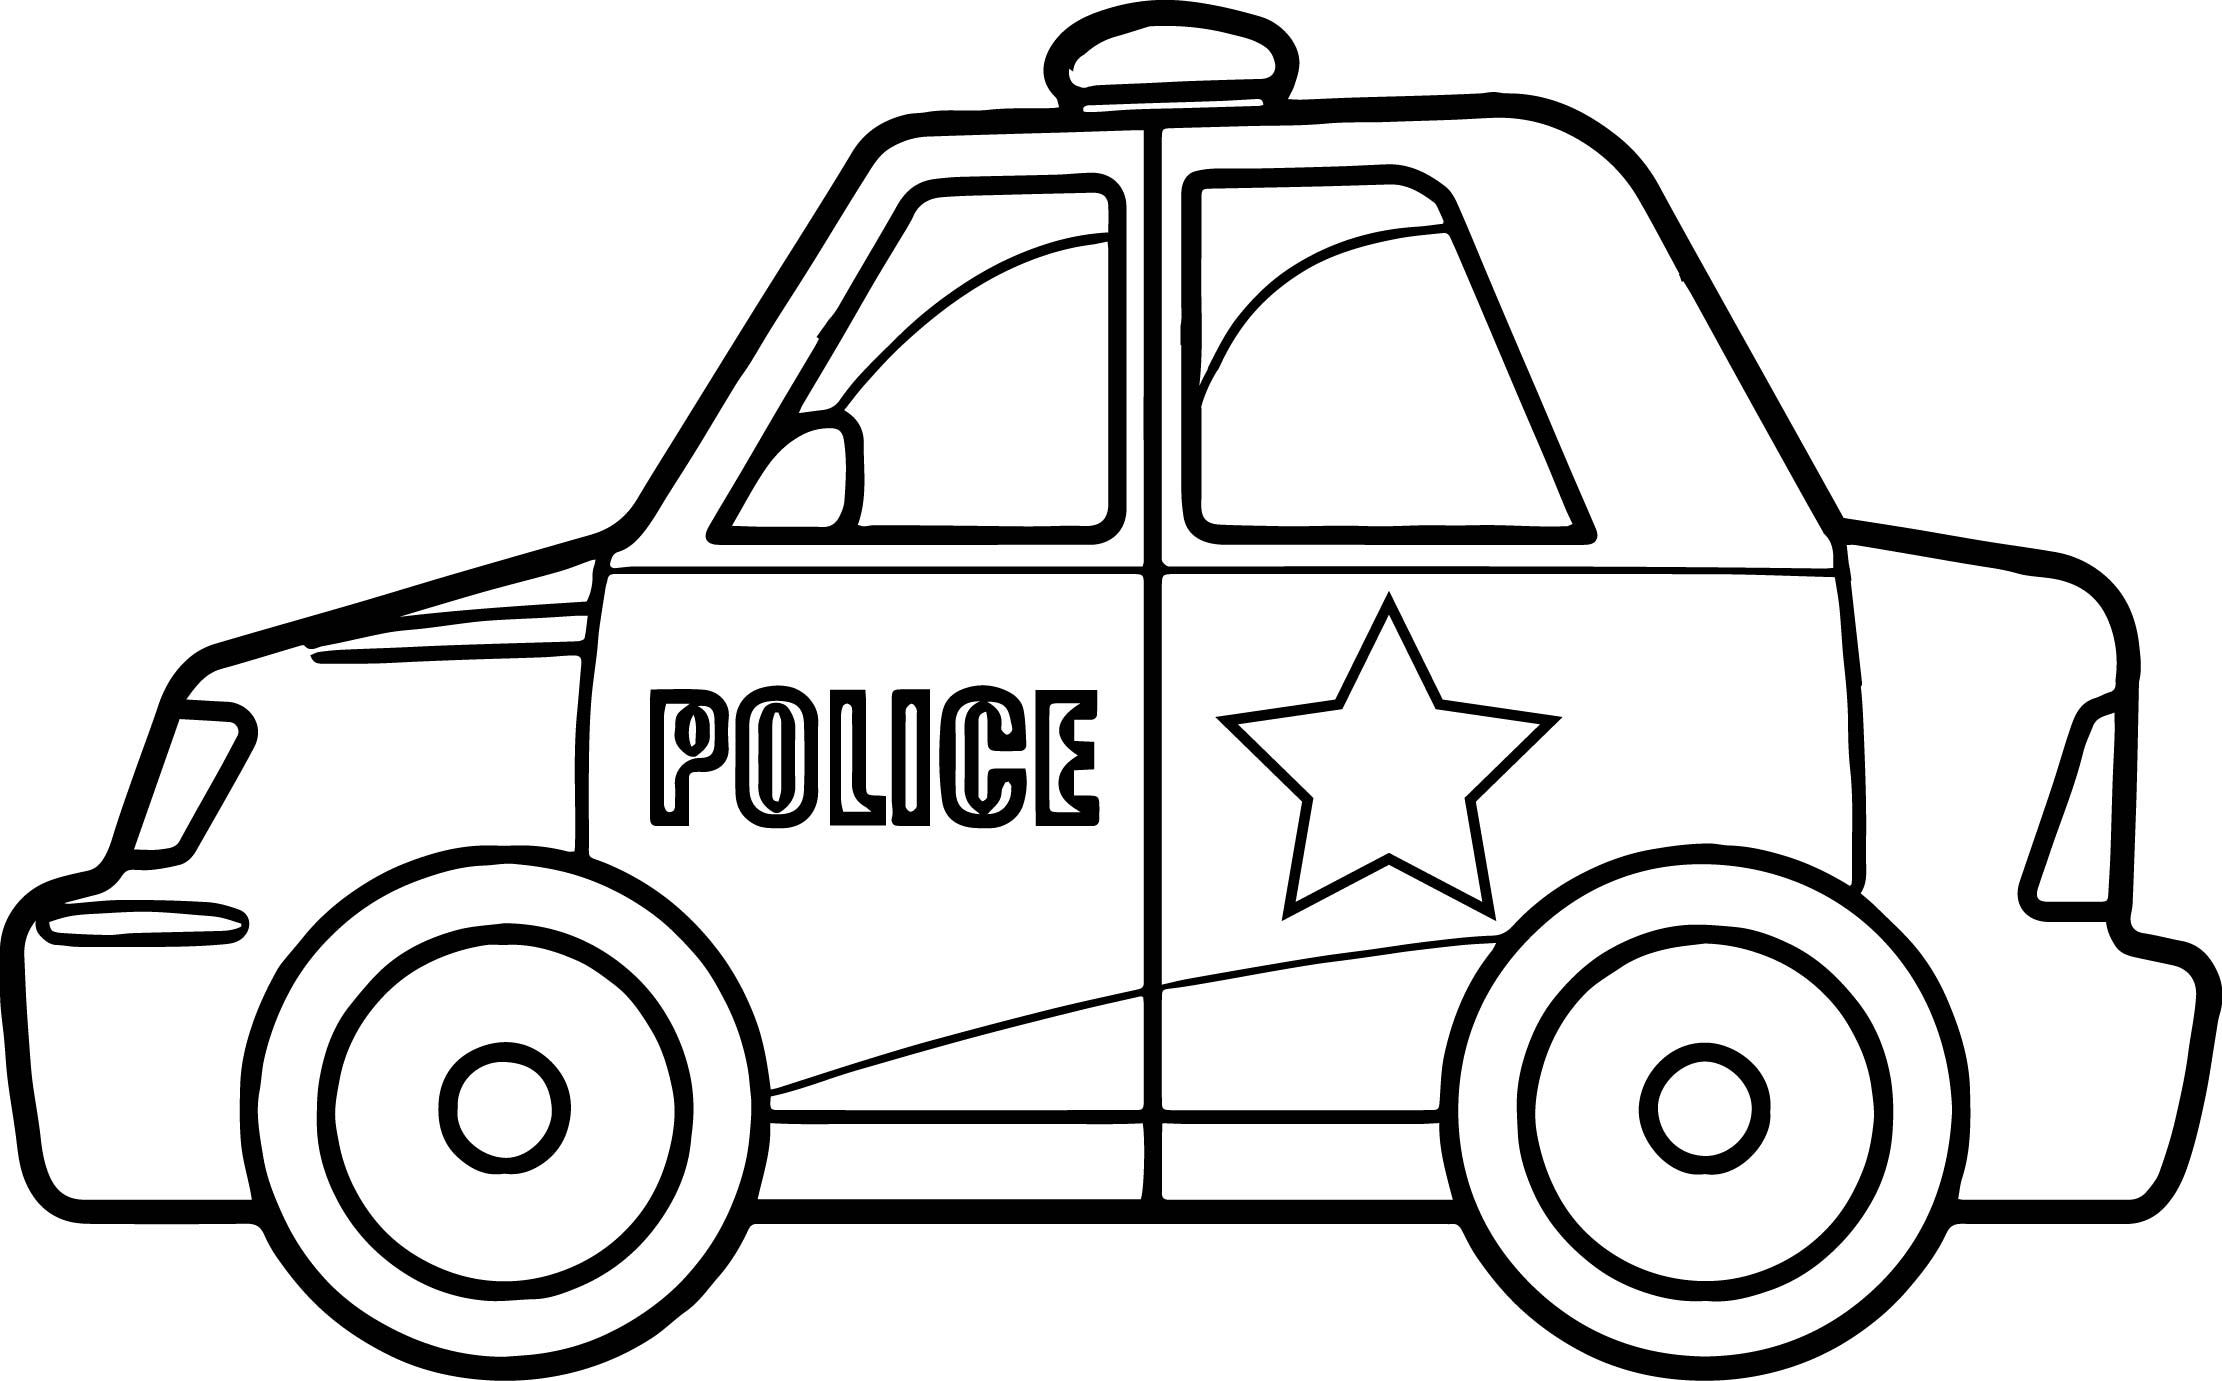 Cool Super Police Car Coloring Page Cars Coloring Pages Truck Coloring Pages Police Cars